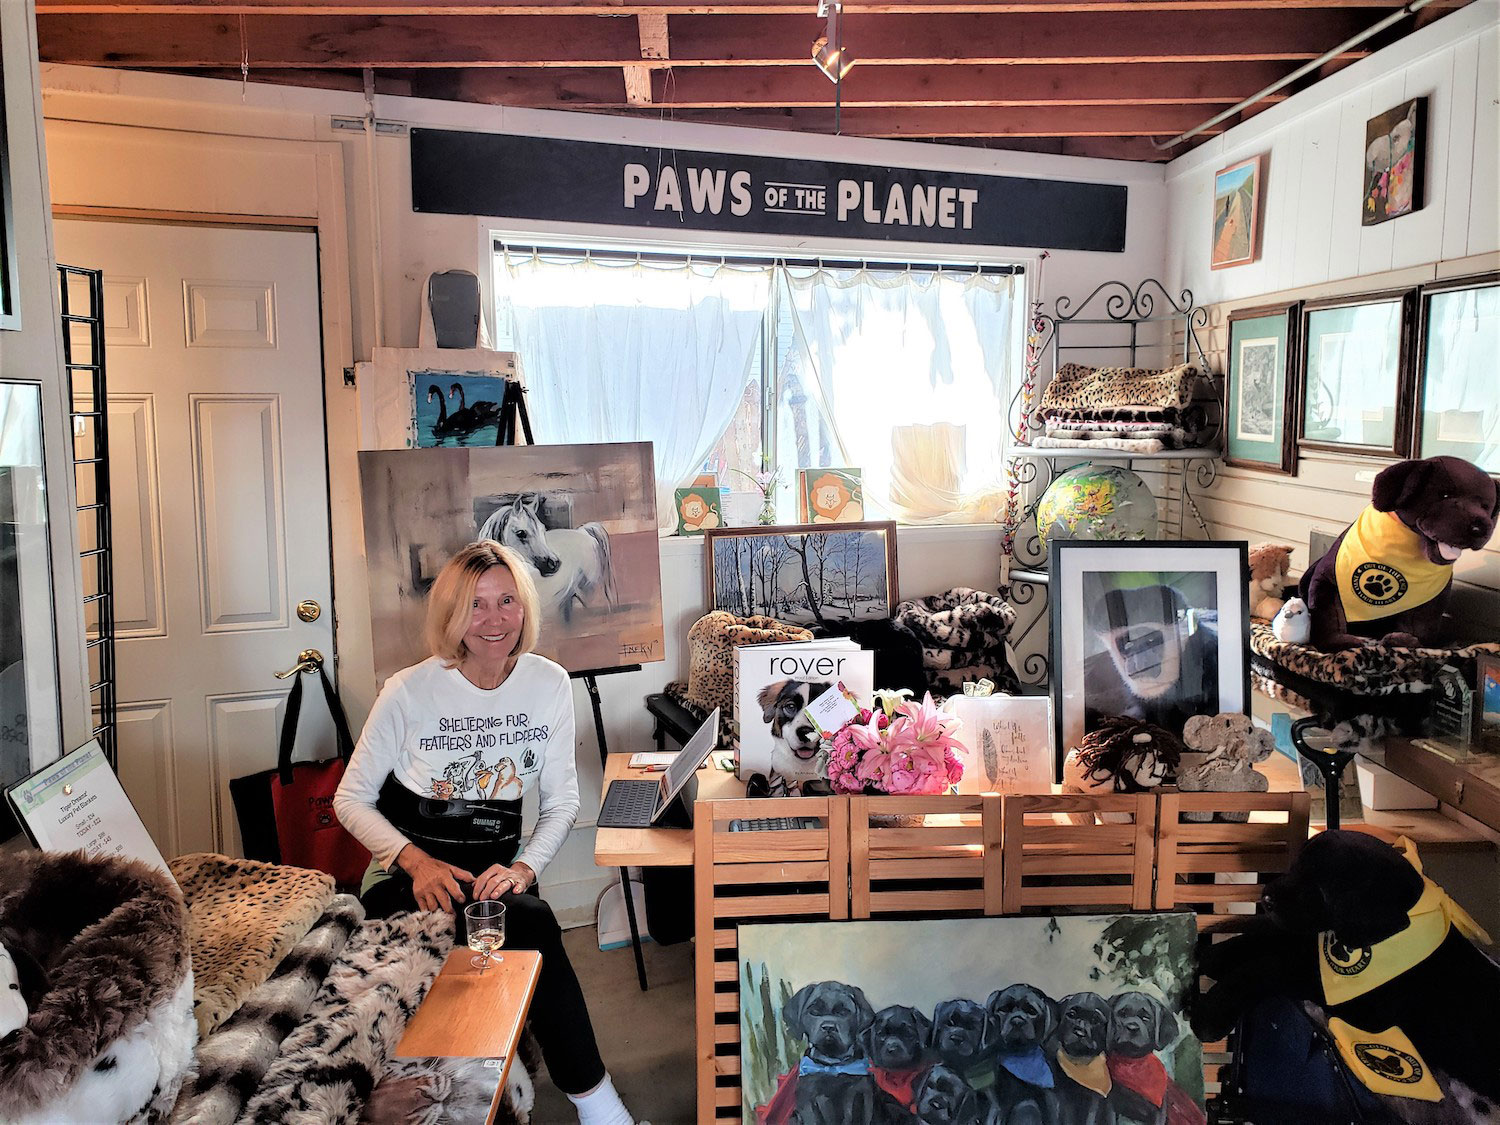 Cannery Village artists Paws of the Planet